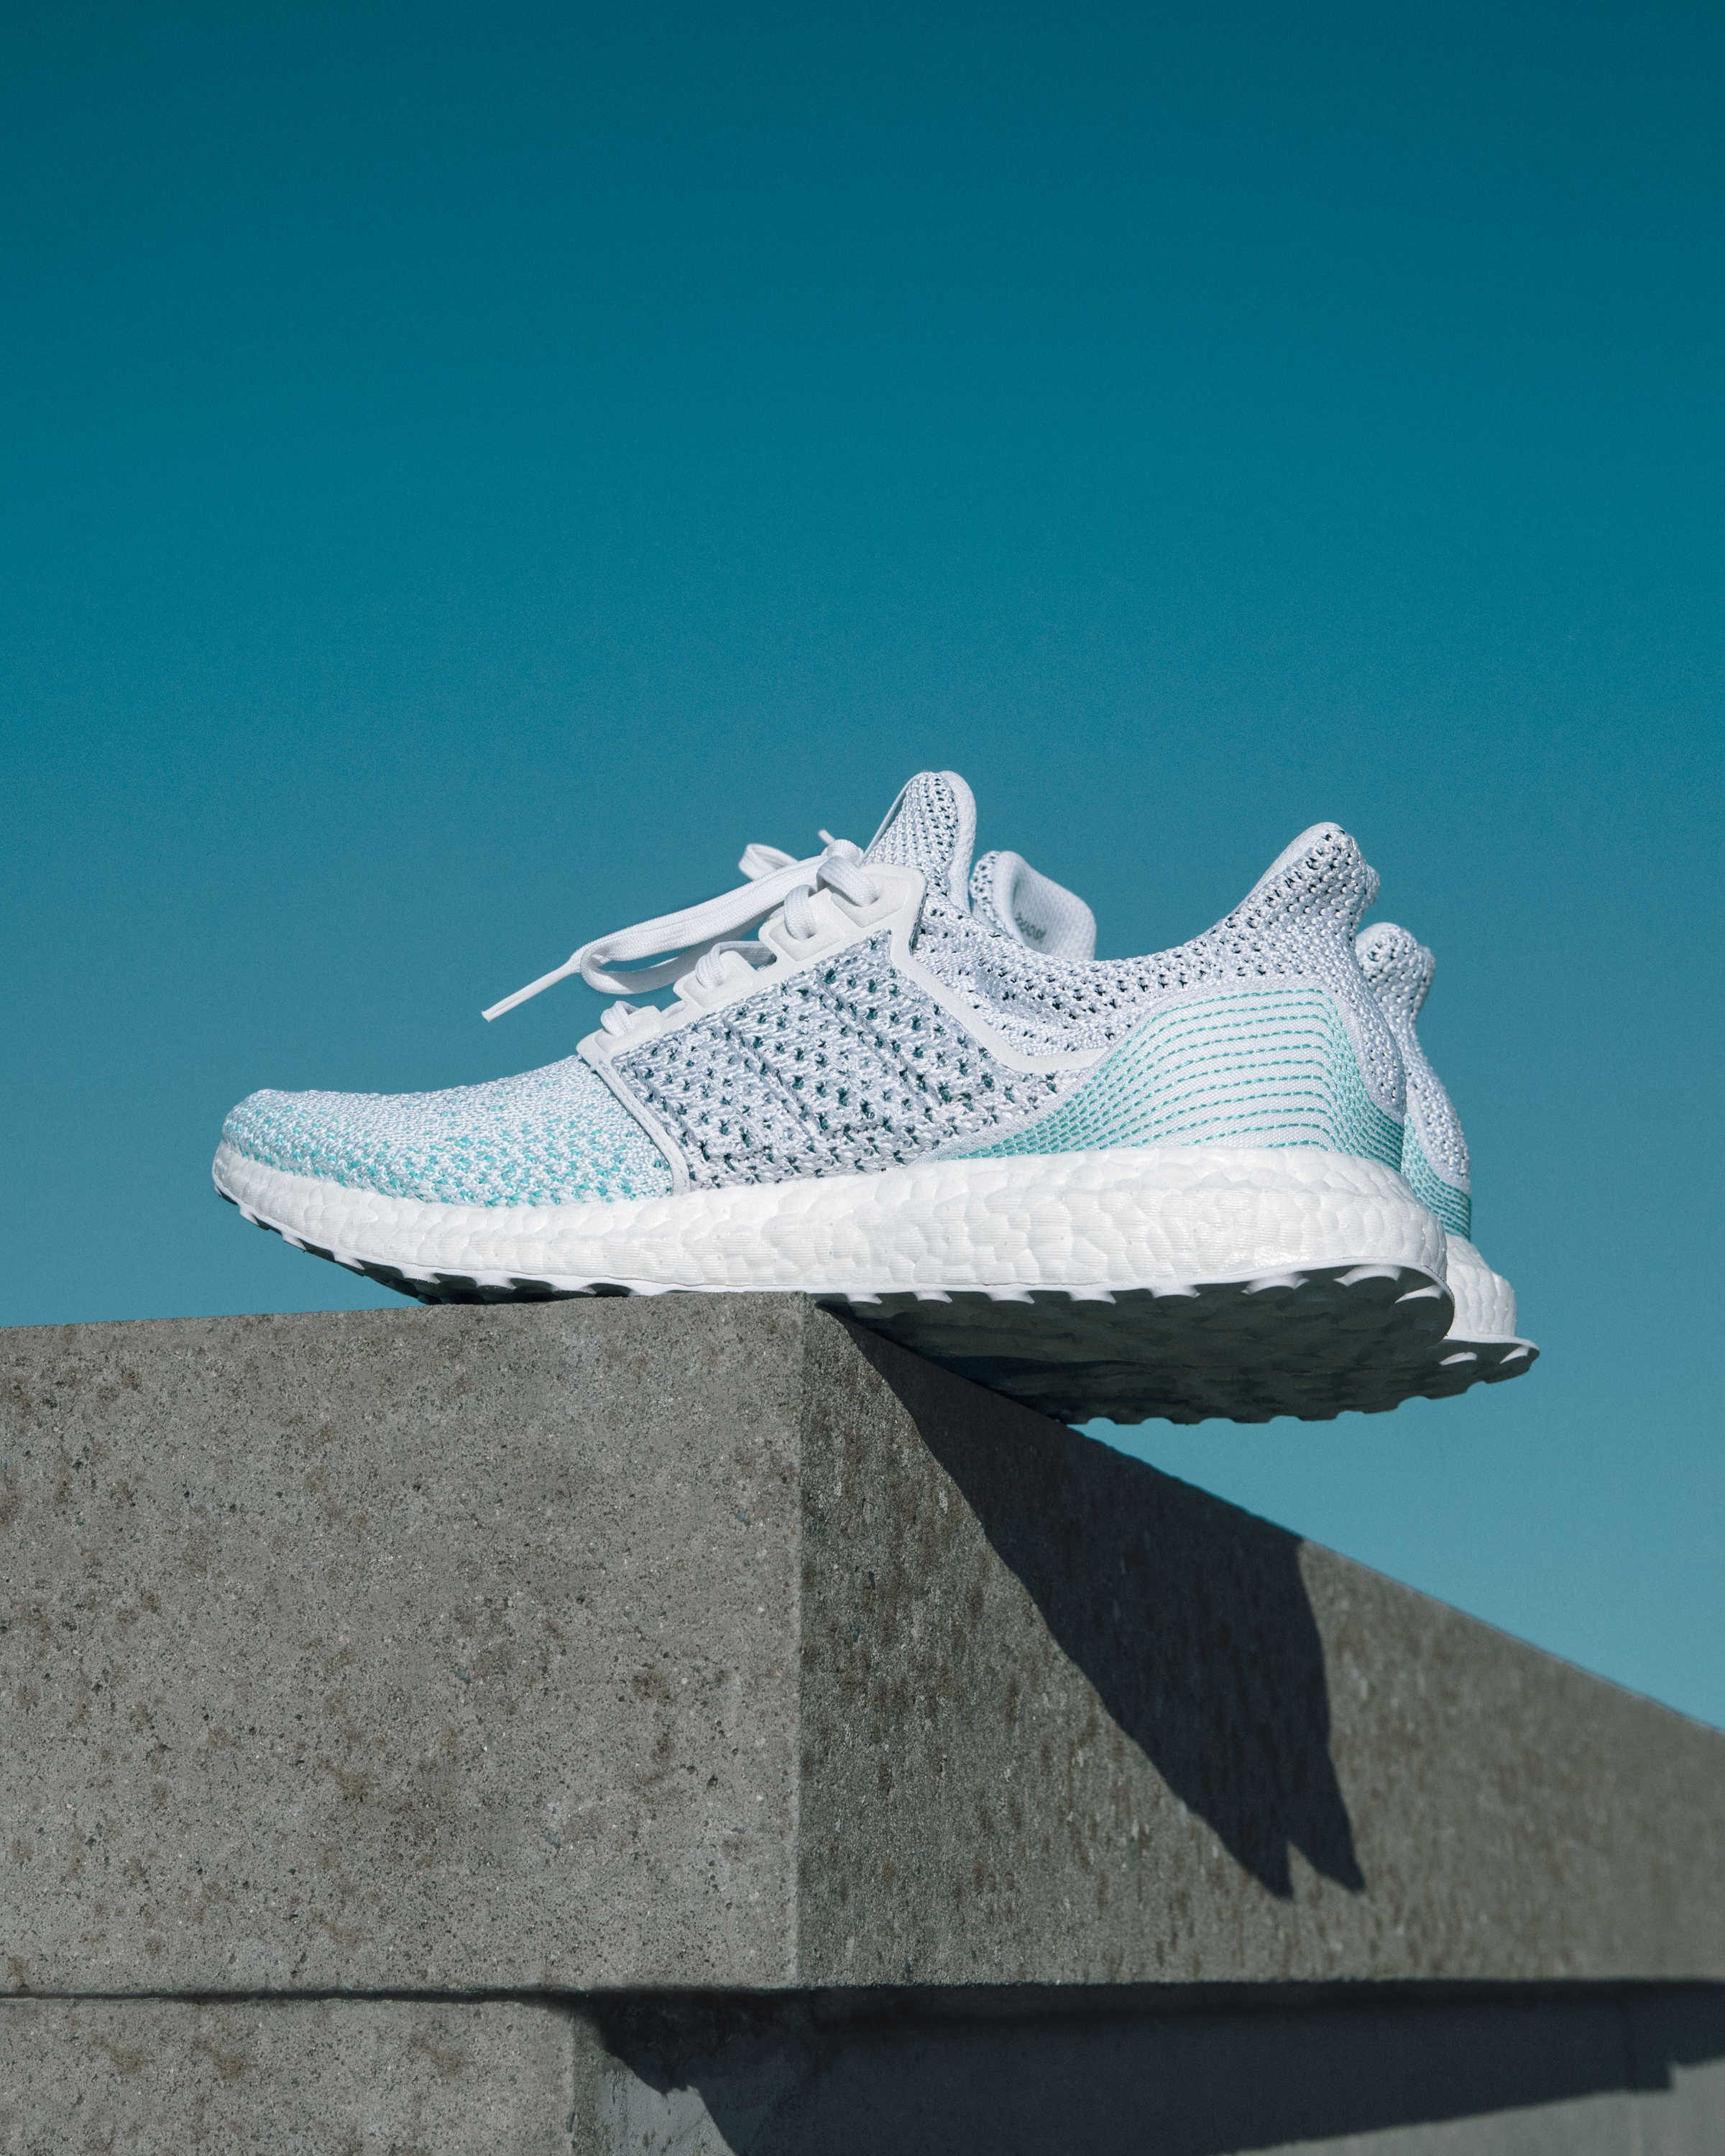 newest 460cd 16aec Raise Money For Our Oceans with adidas x Parley